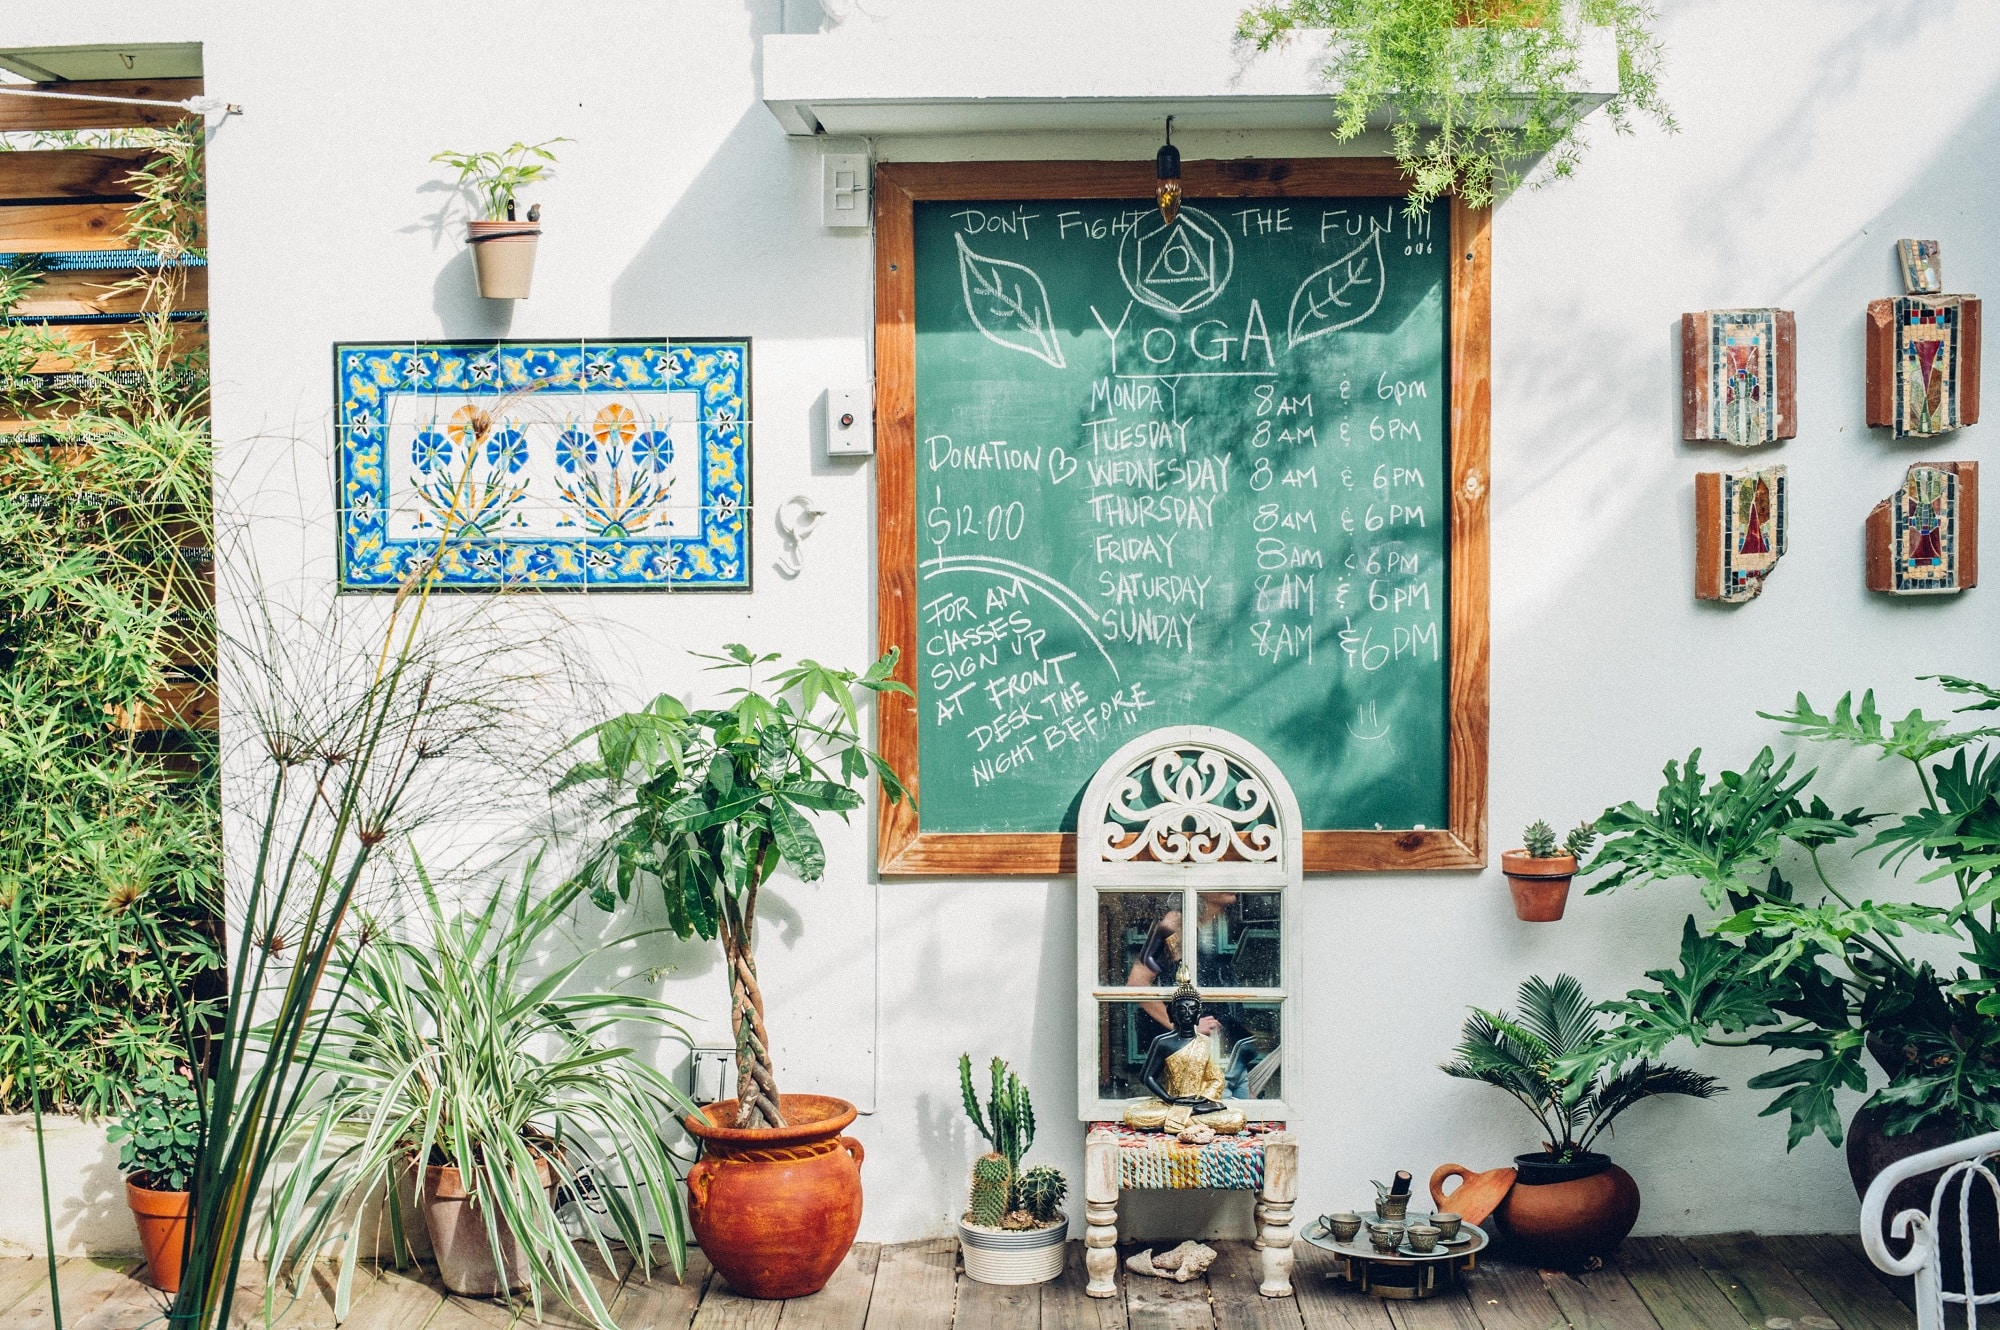 A chalkboard in the courtyard of the Dreamcatcher lists all of the yoga classes from which guests can choose